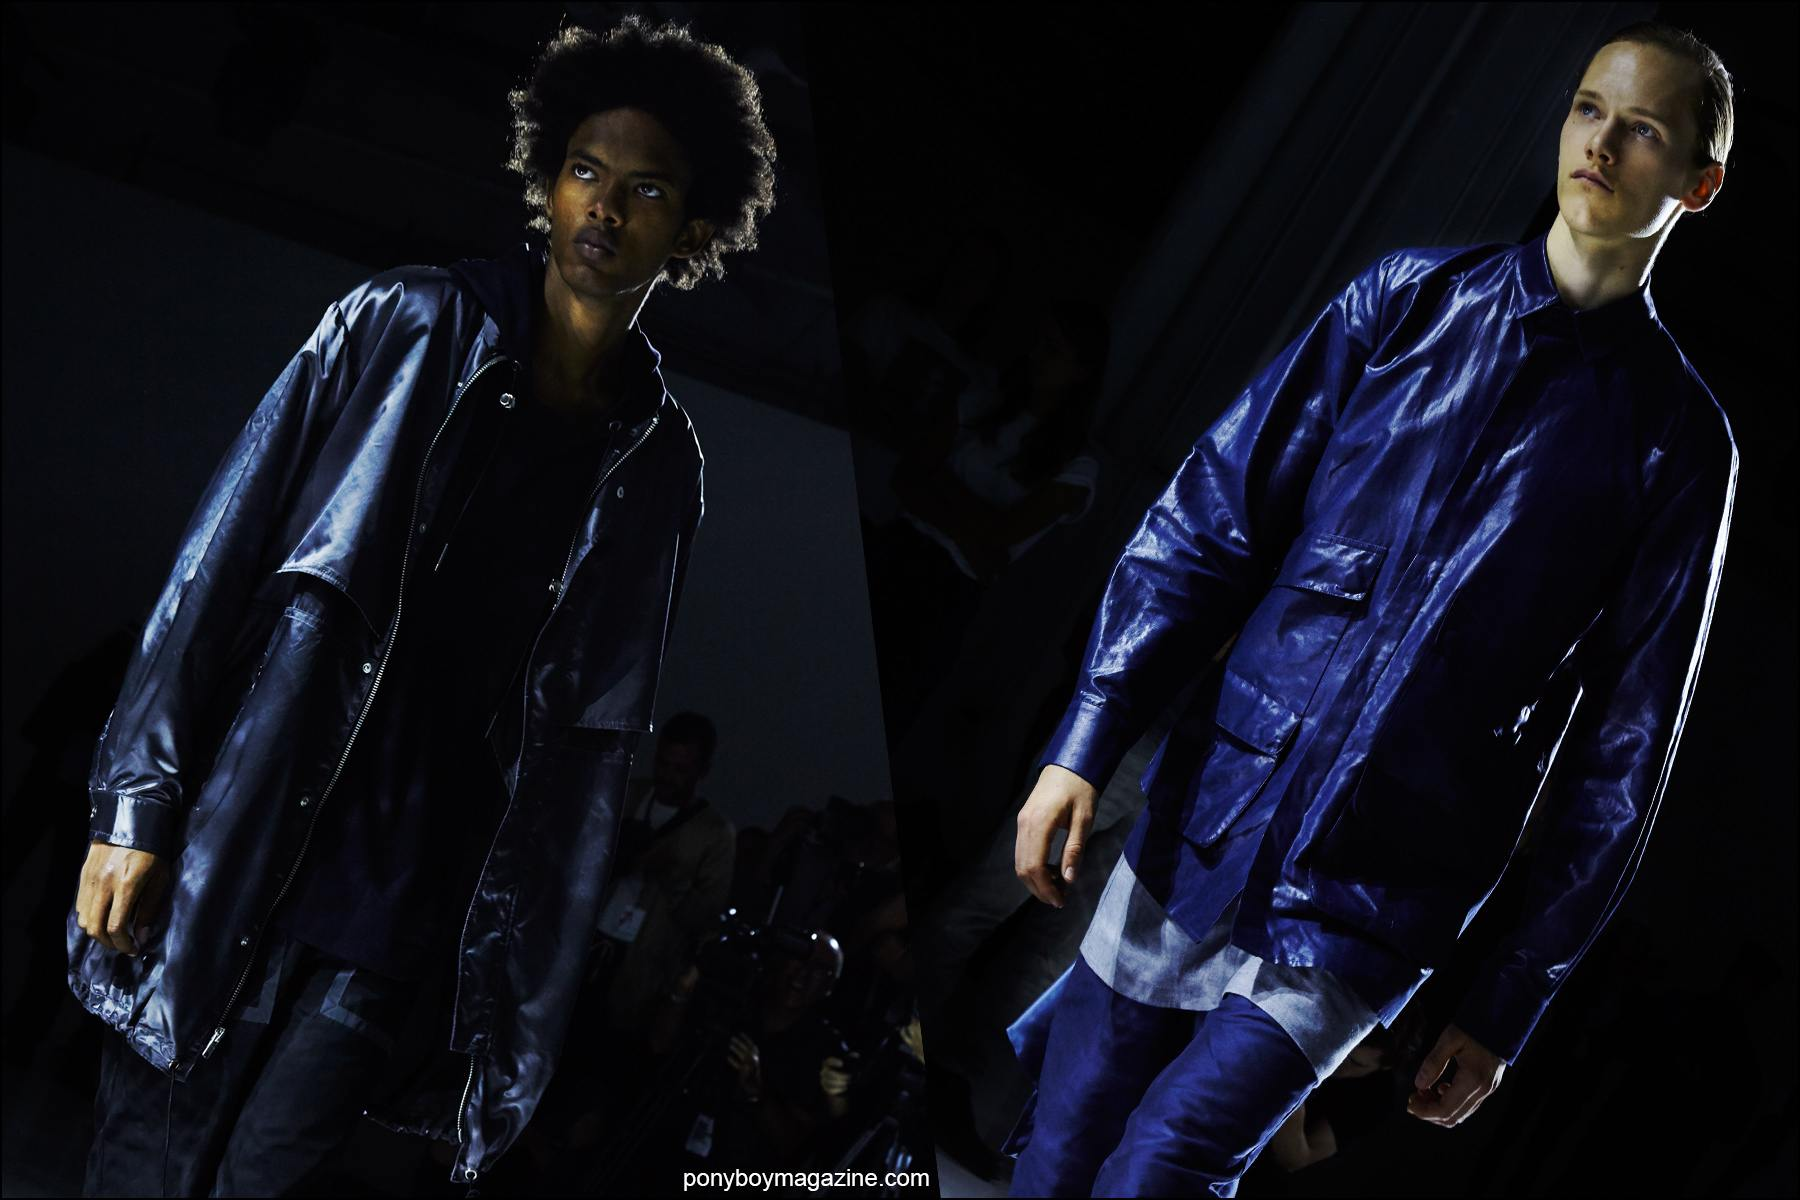 Models photographed on the runway by Alexander Thompson, Rochambeau Spring/Summer 2016. Ponyboy magazine NY.